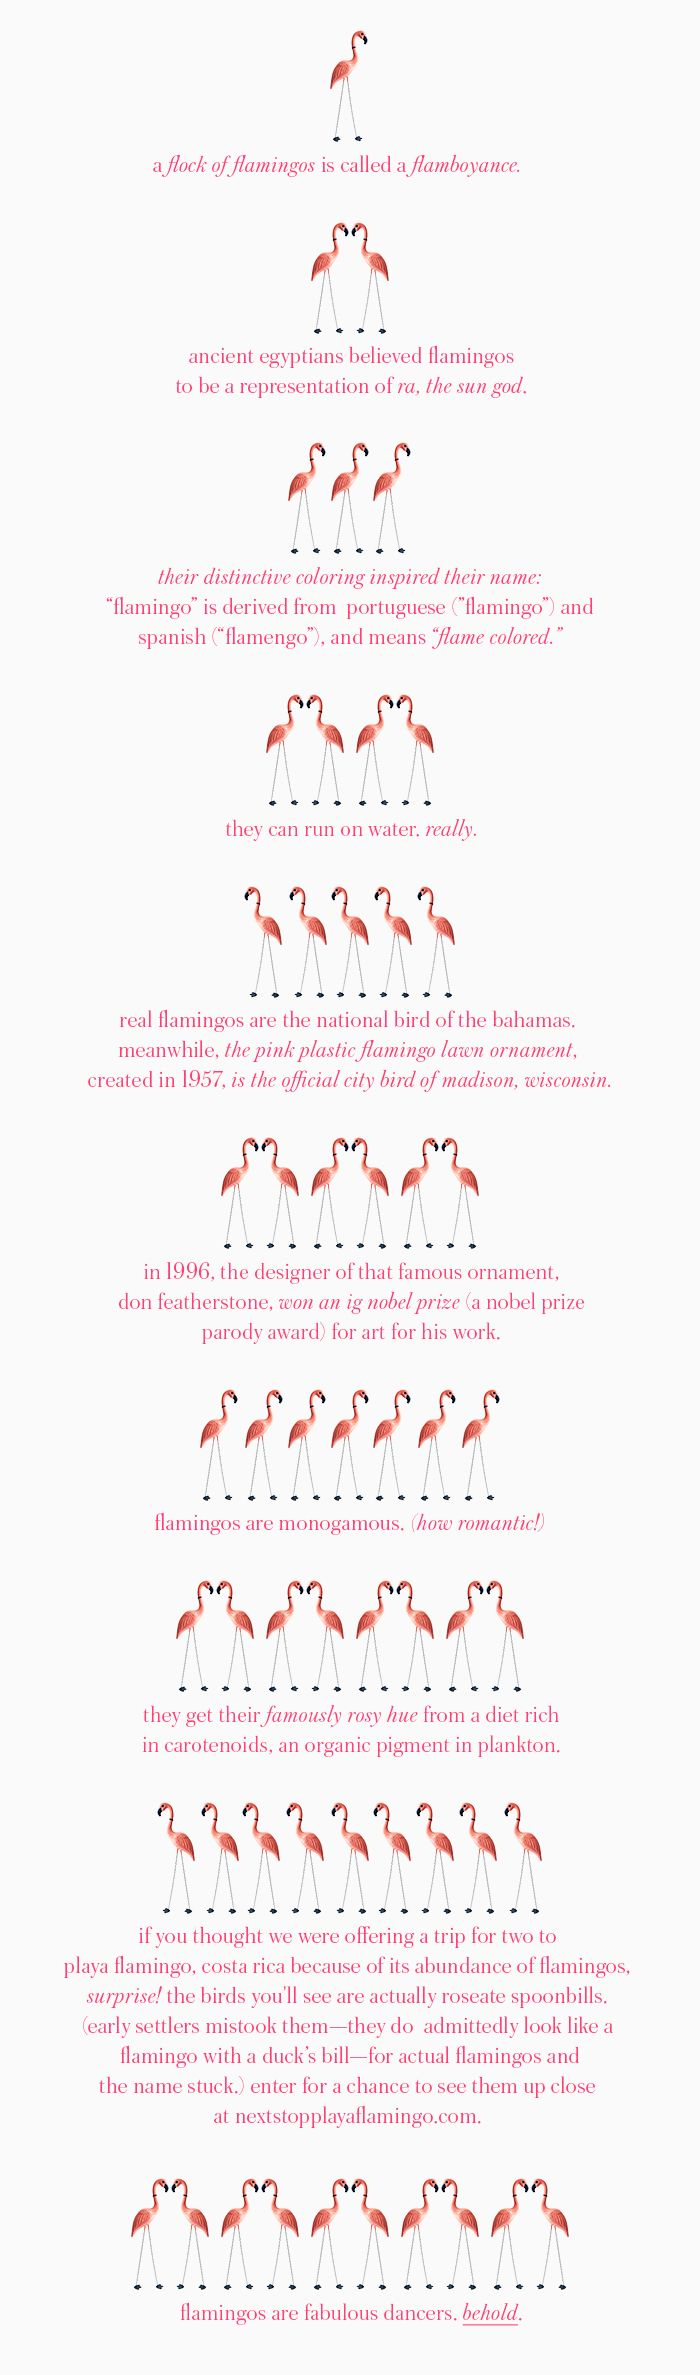 10 things you don't know about flamingos                                                                                                                                                      More